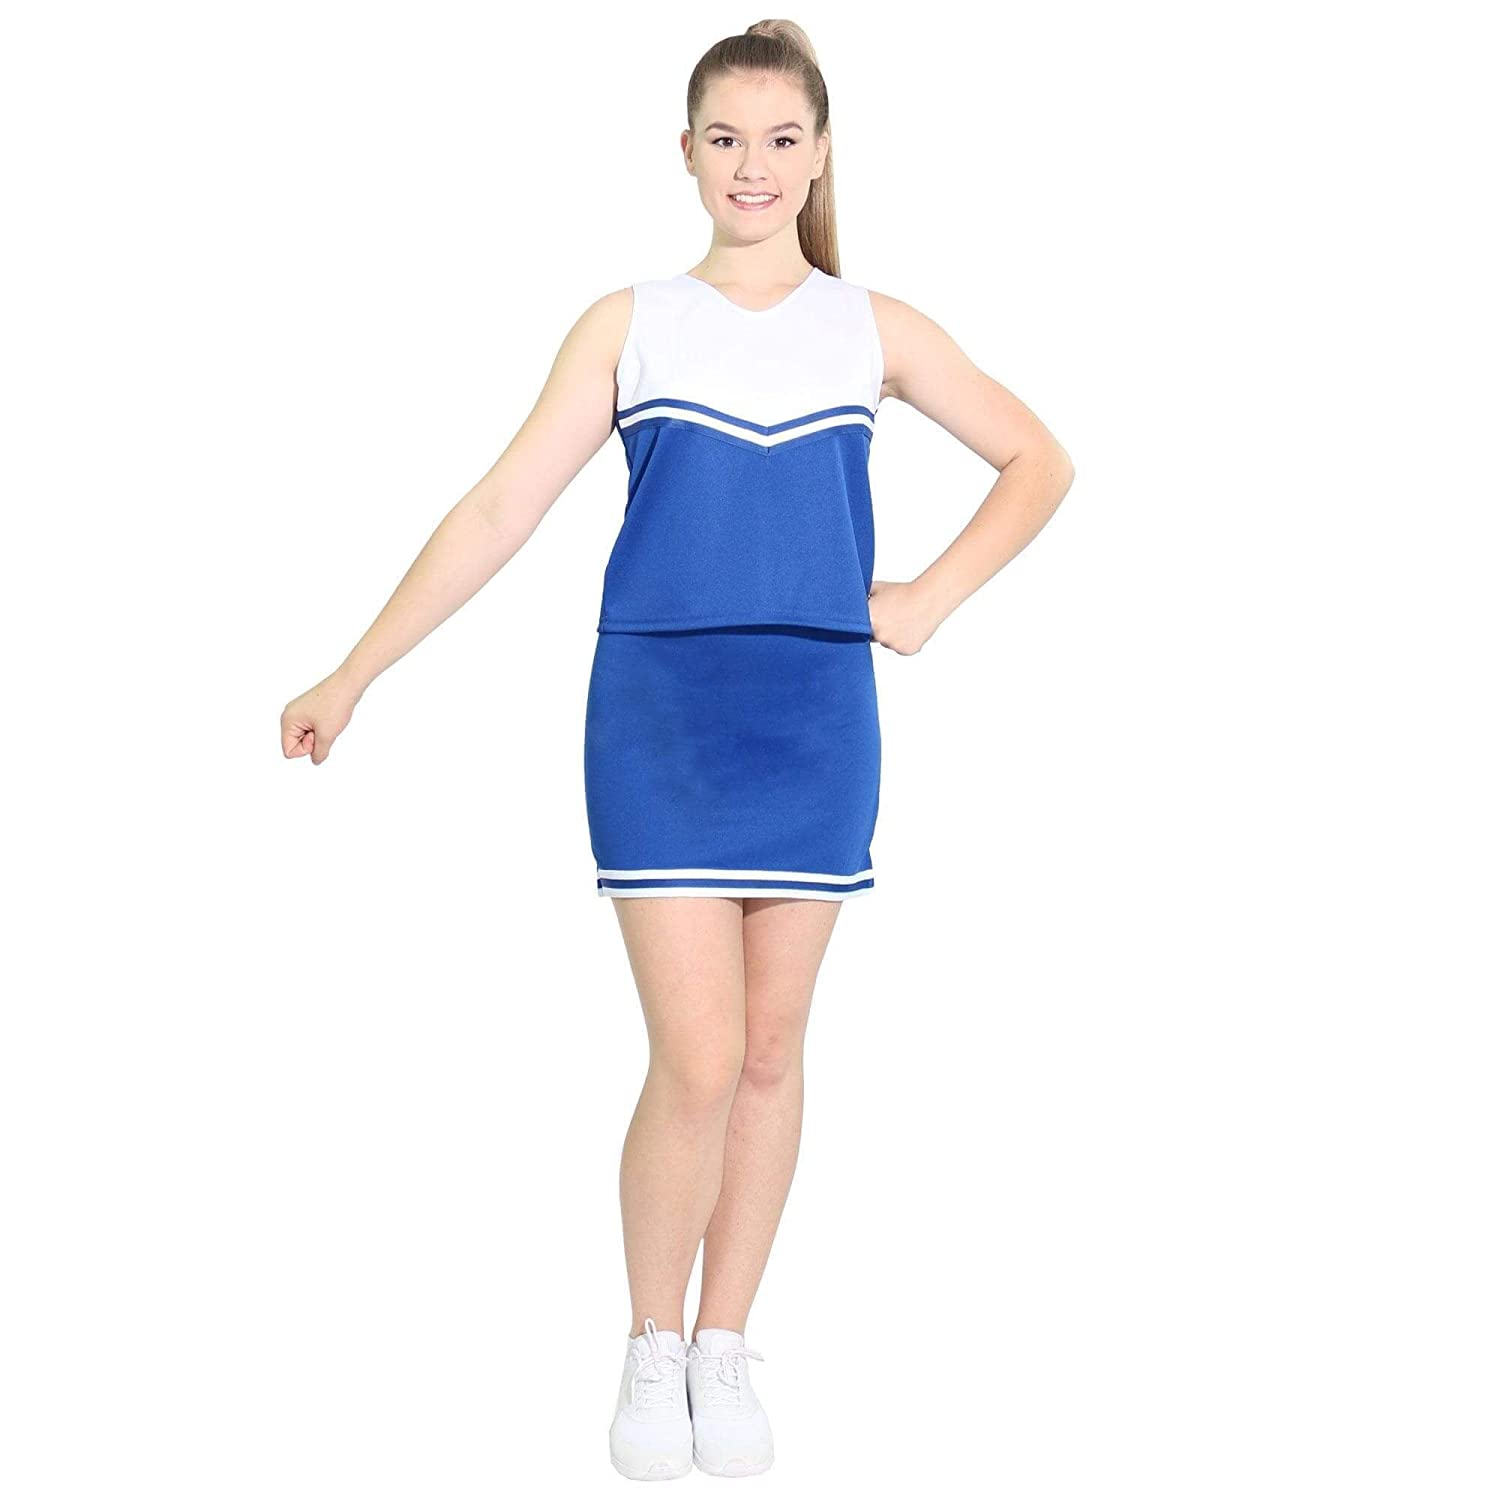 Danzcue Womens V-Neck Cheerleaders Uniform Set